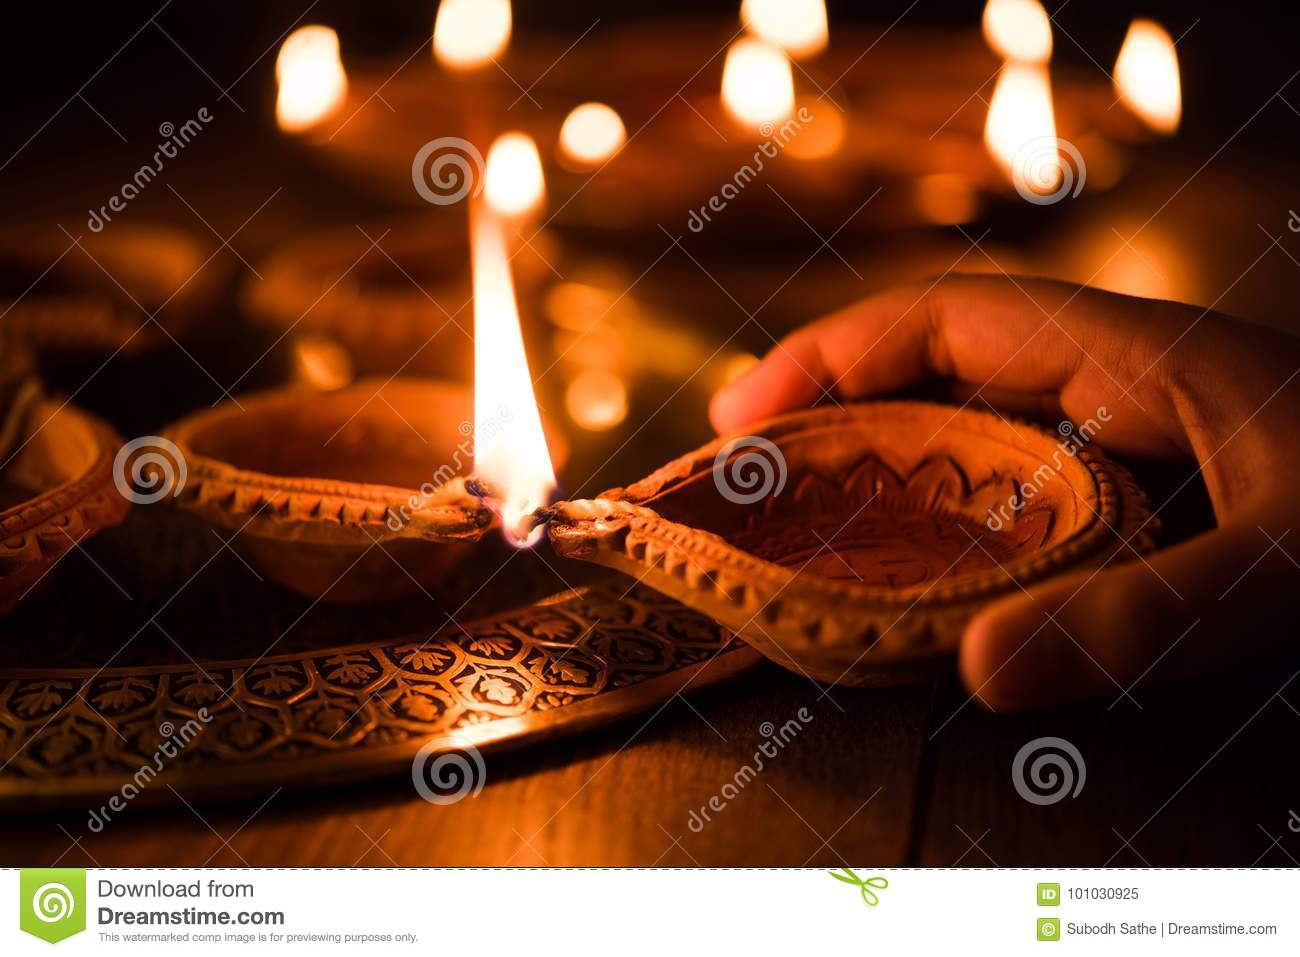 Earthen Lamp Diwali Happy Diwali Hand Holding Or Lighting Or Arranging